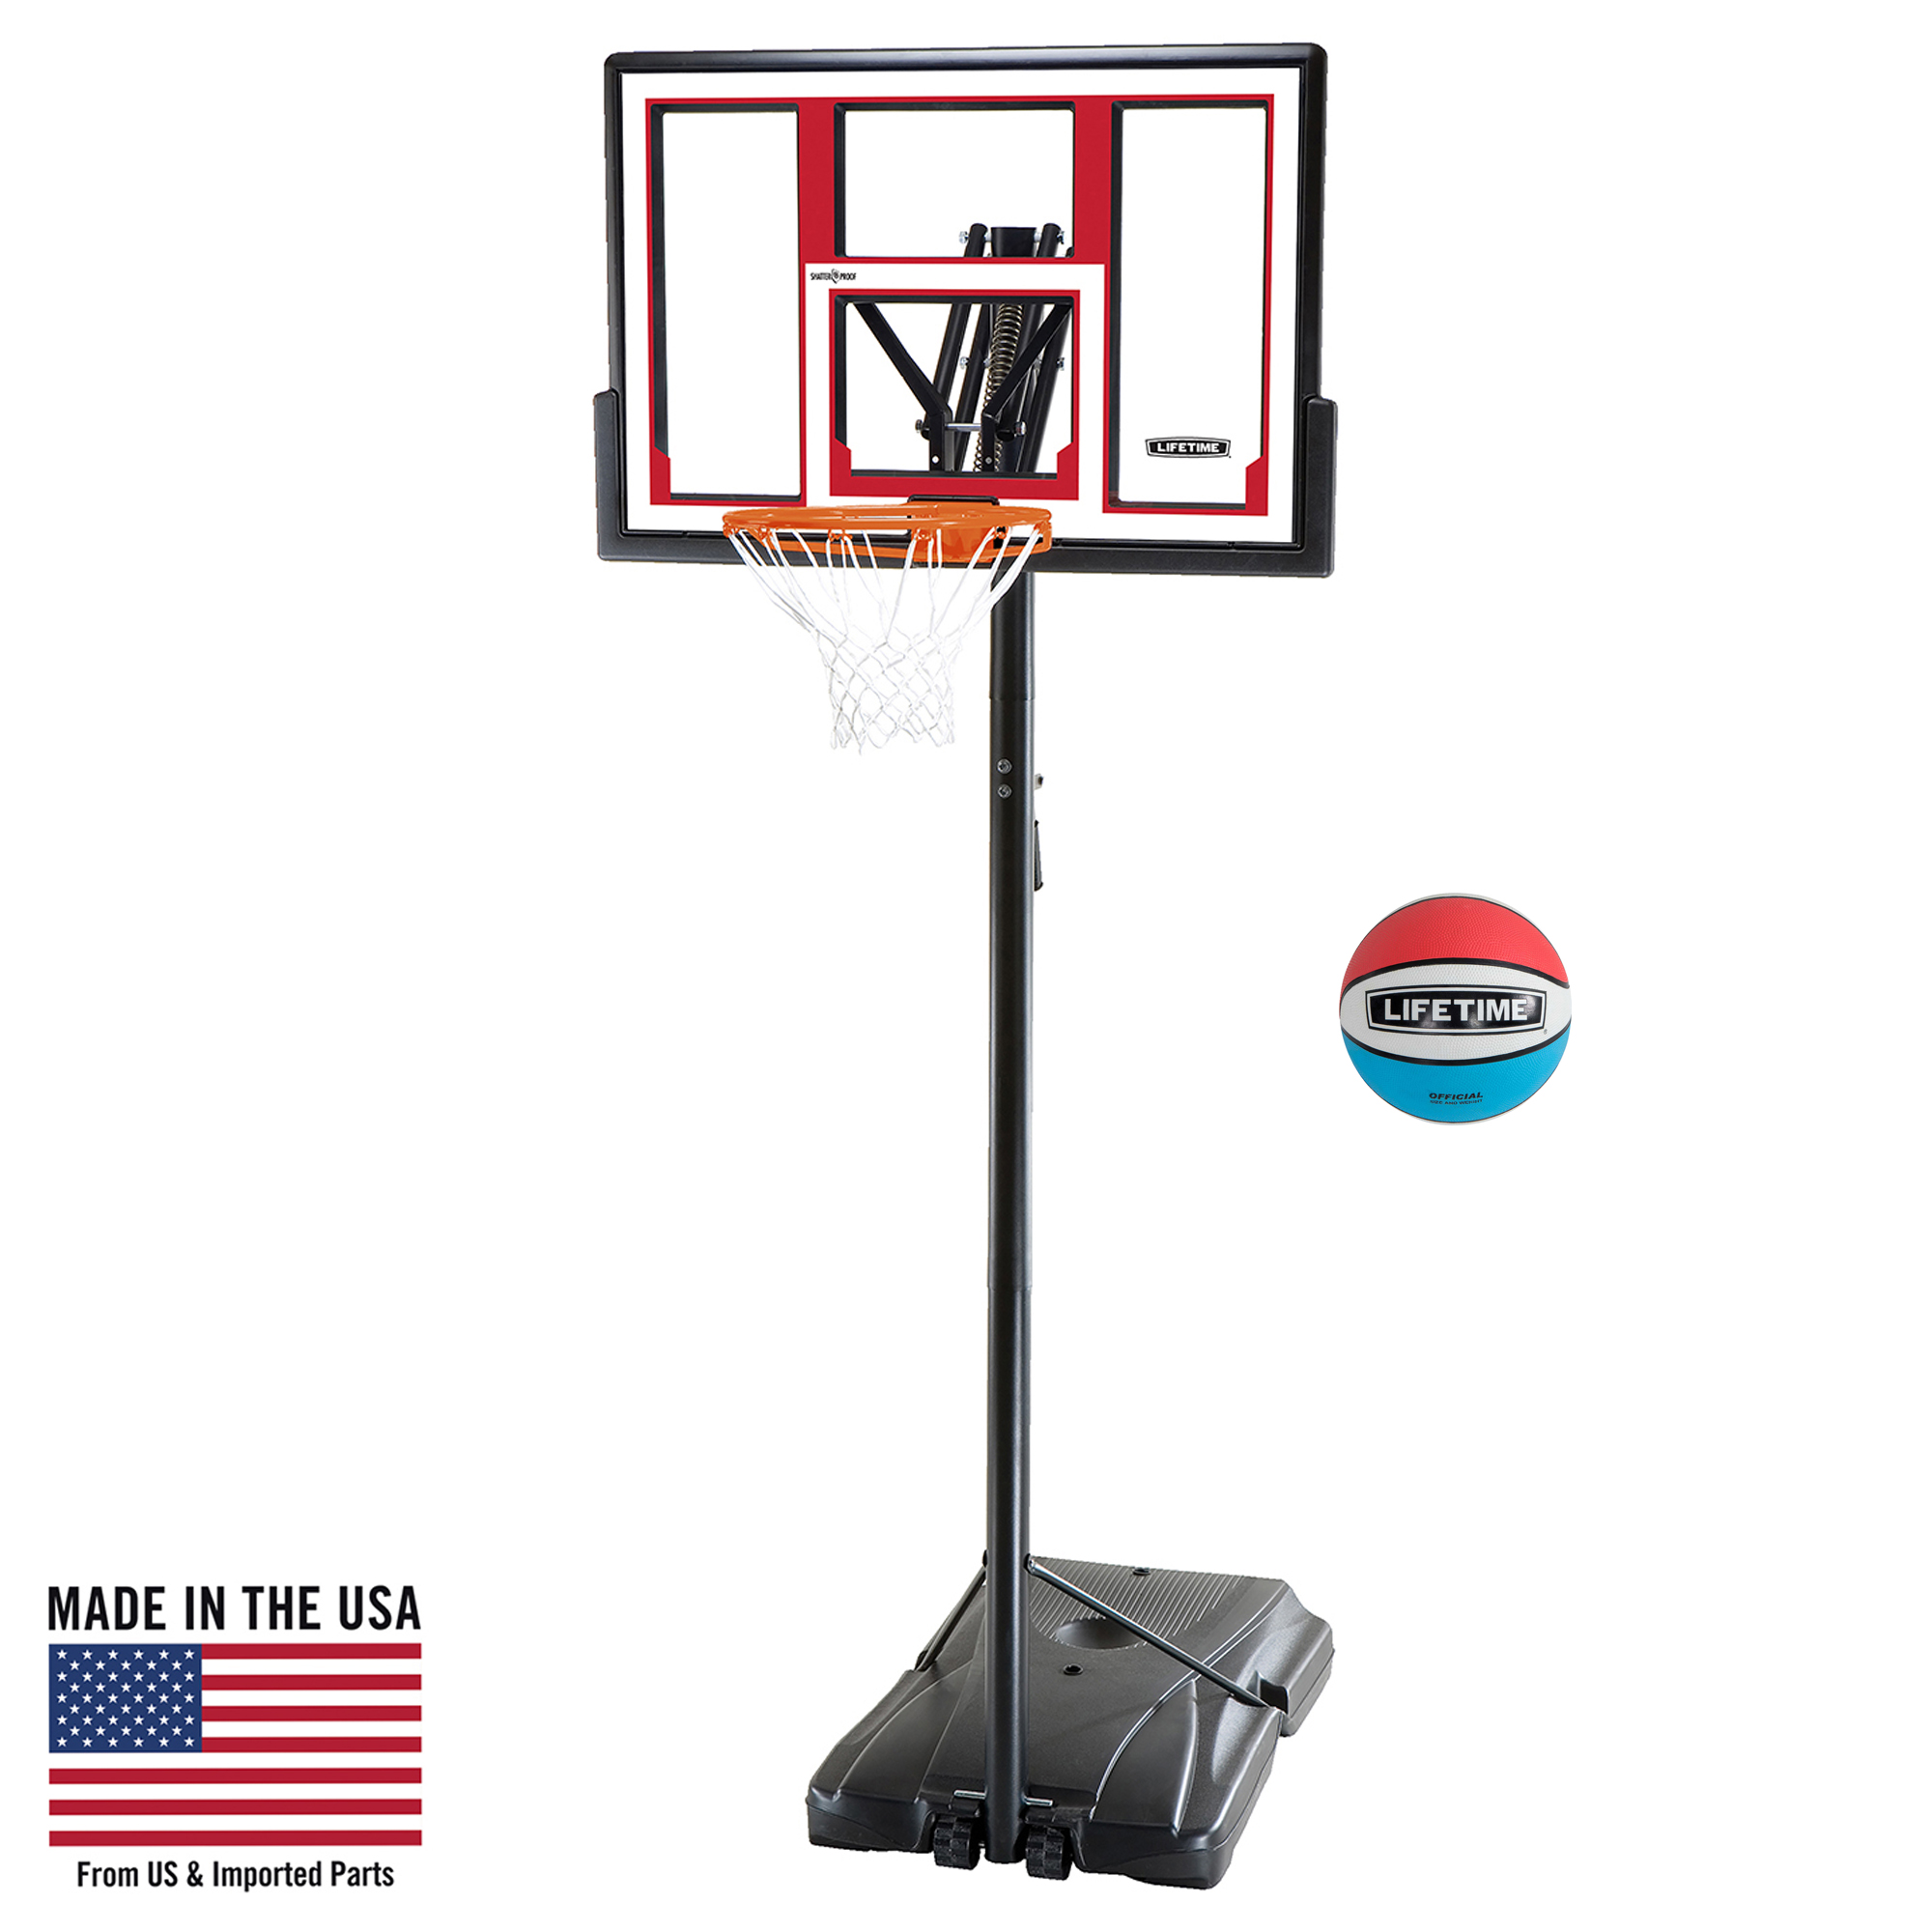 Lifetime Adjustable Portable Basketball Hoop (48-Inch Polycarbonate), 90491